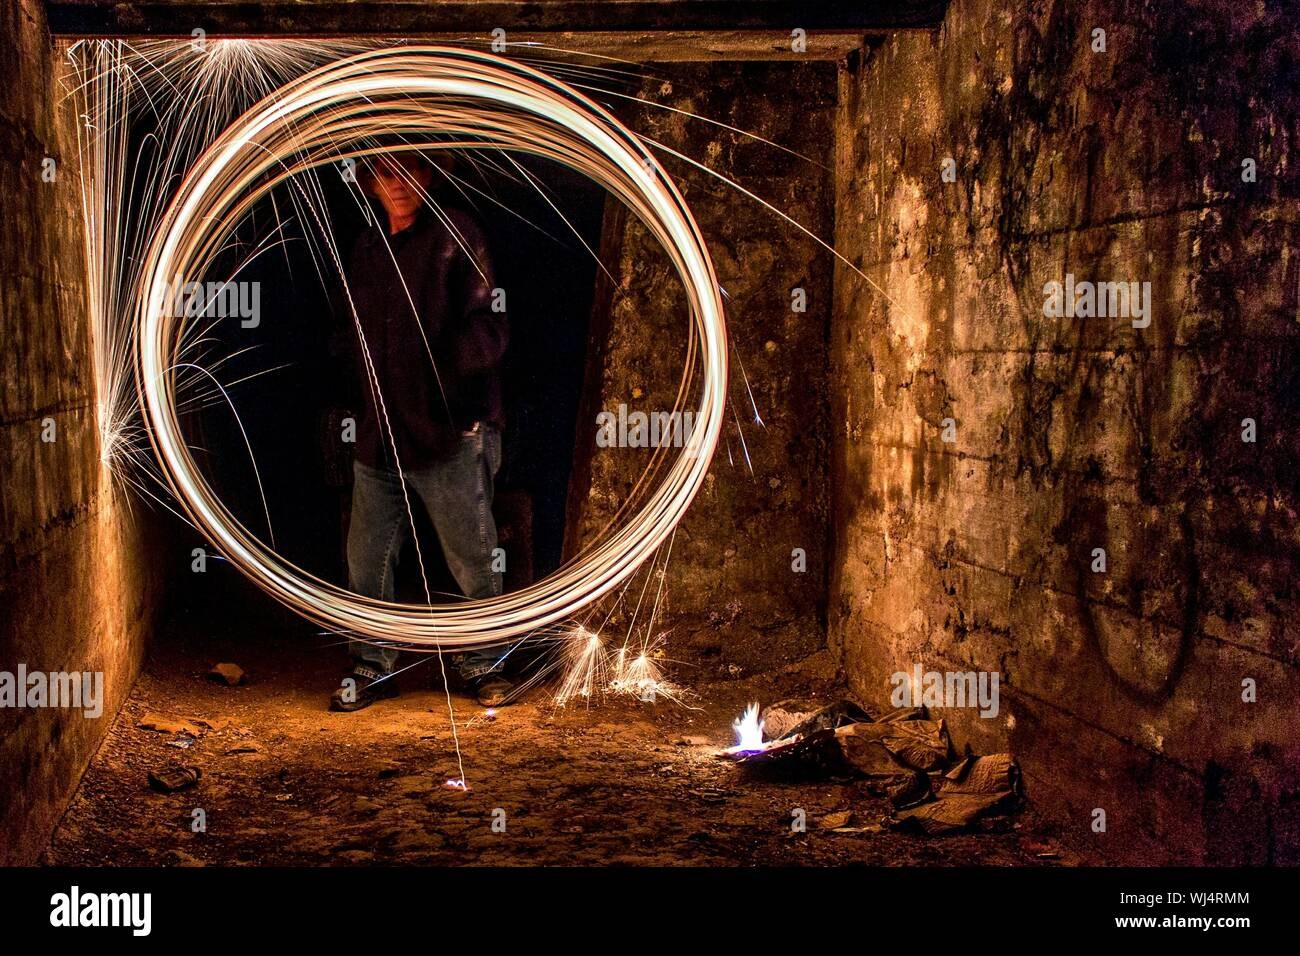 Burning Steel Wool At Night In Room Stock Photo